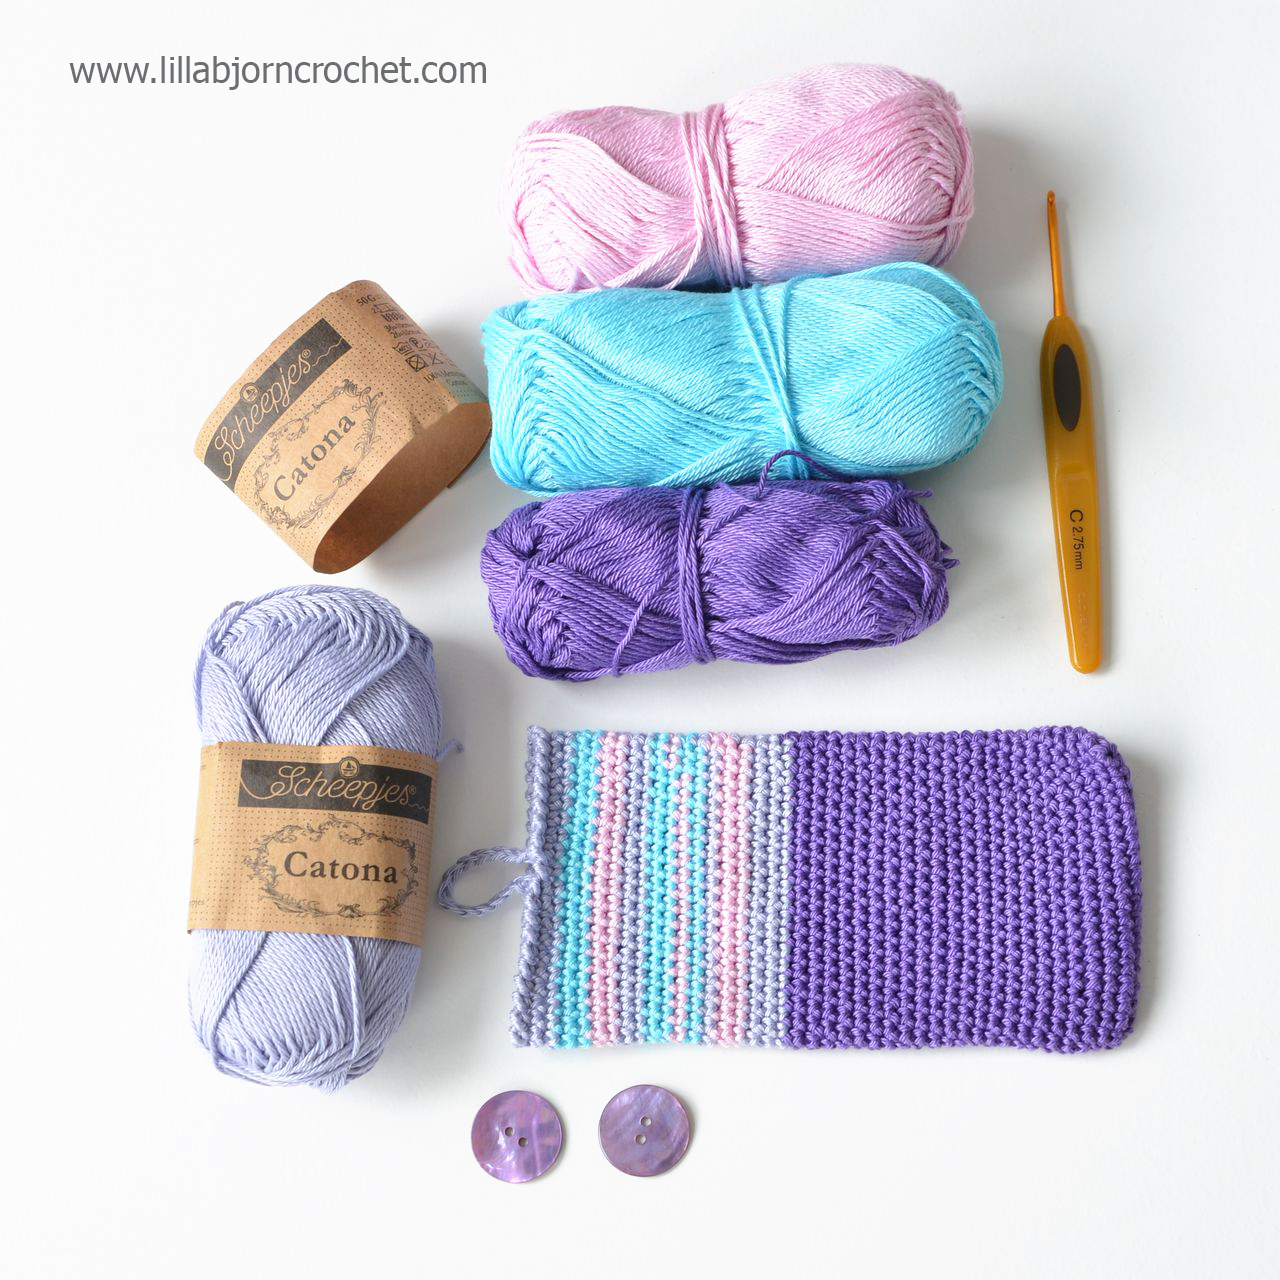 Easy to make crocheted cozy for a mobile phone or tablet. With small mandala decor. Free pattern by Lilla Bjorn Crochet